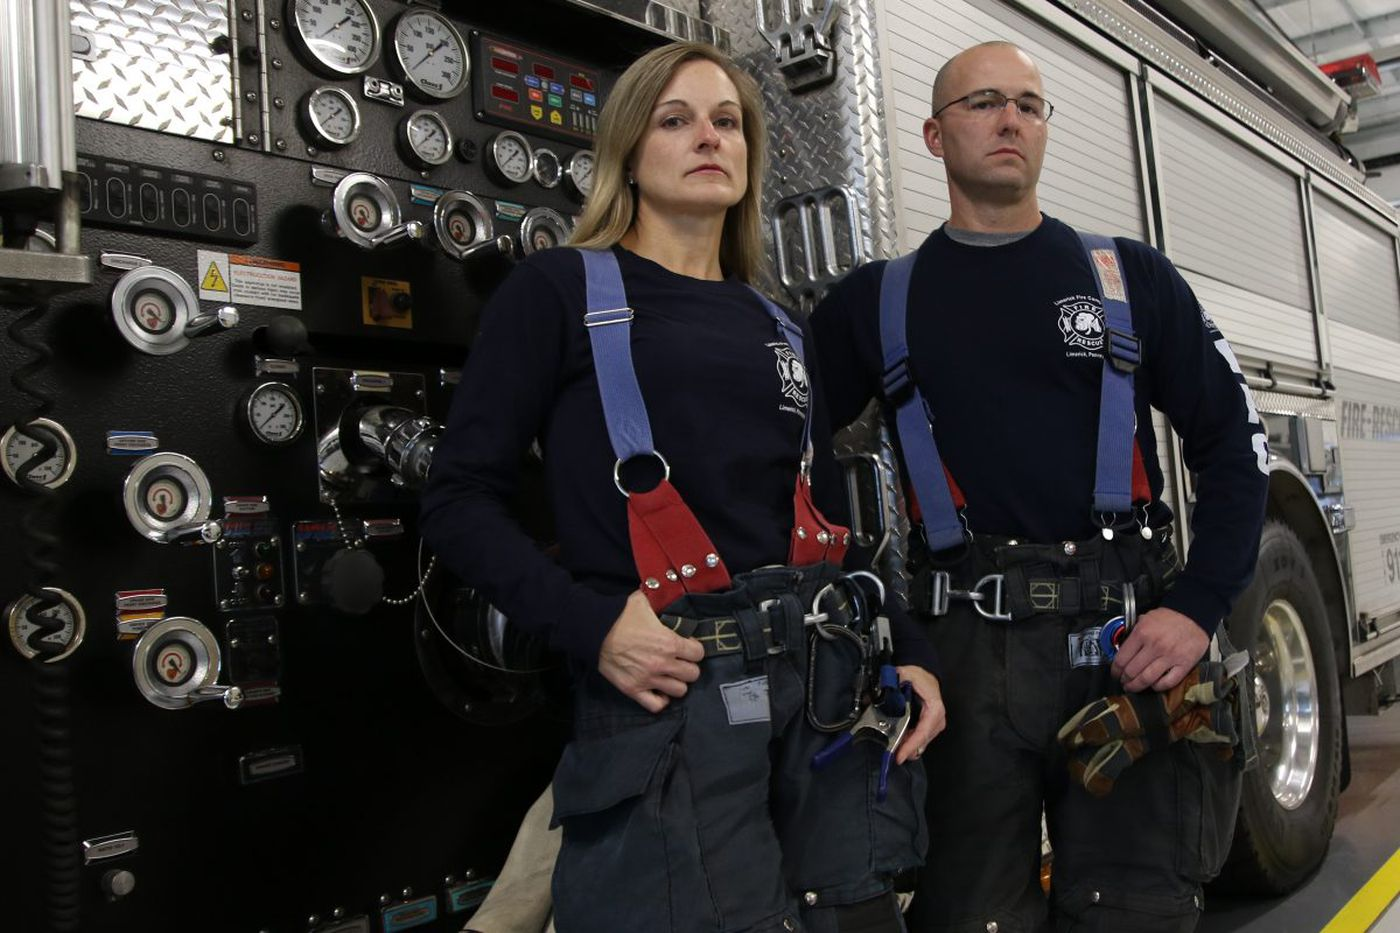 Heart disease kills firefighters. This one is also a scientist, and she is fighting back.